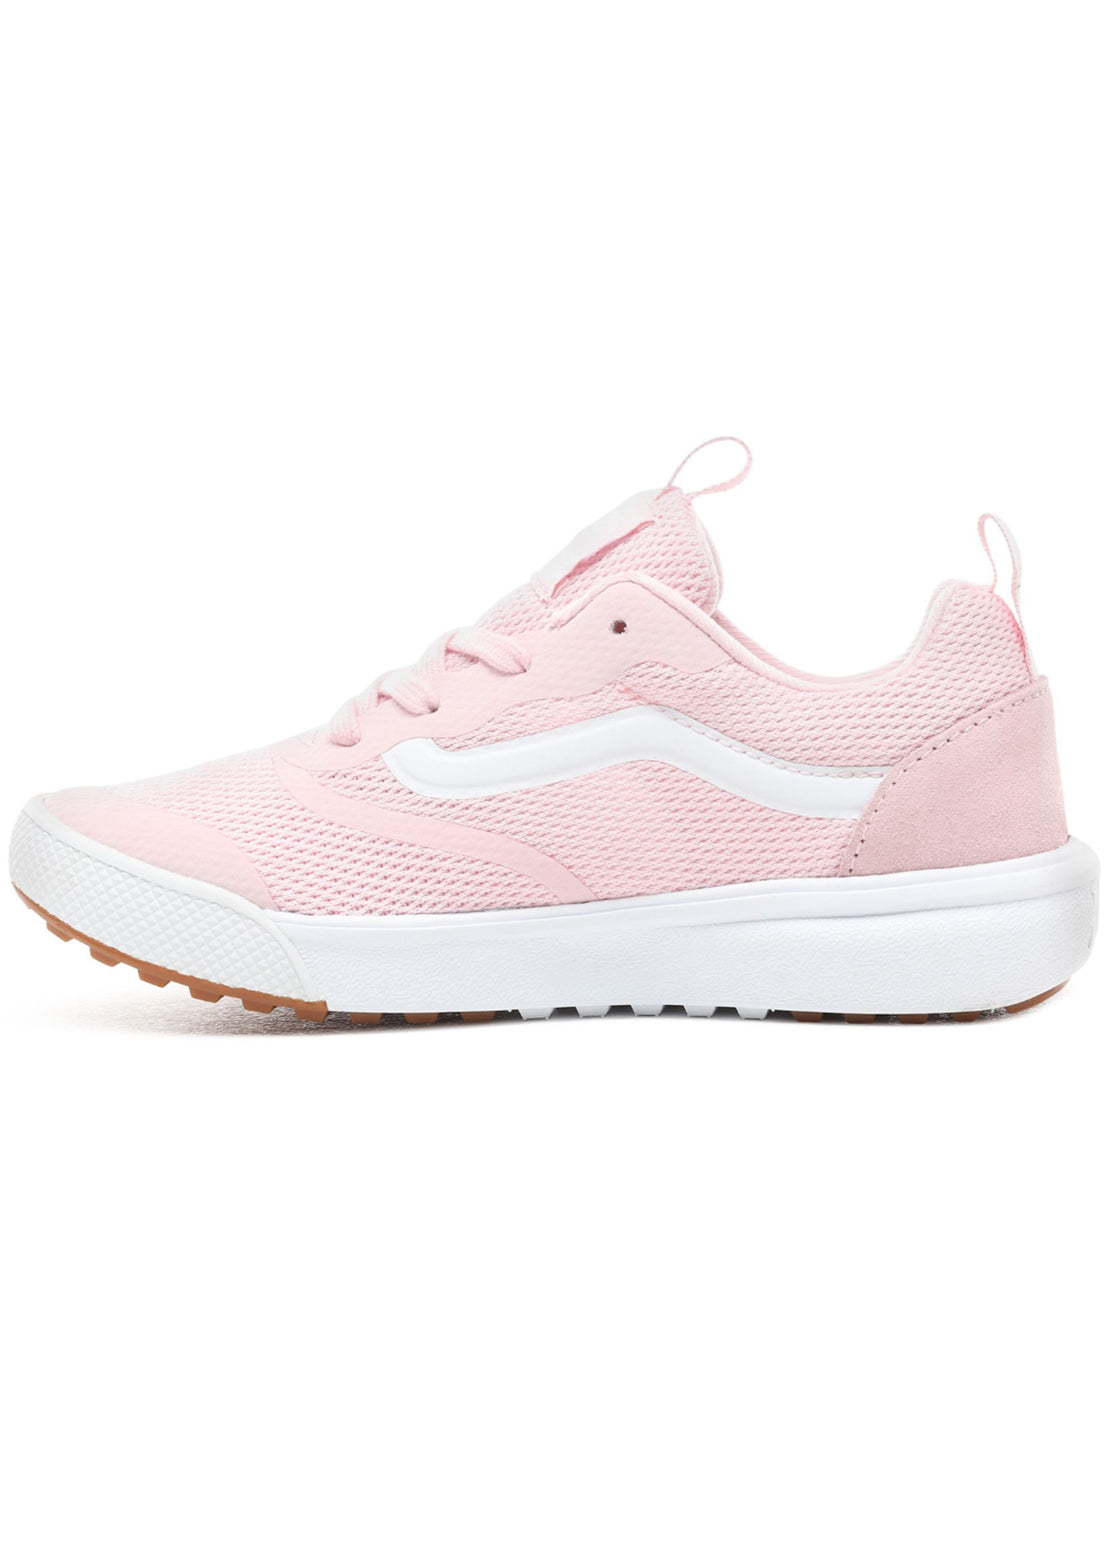 Vans Junior Ultrarange Rapidweld Shoes Pink Chalk